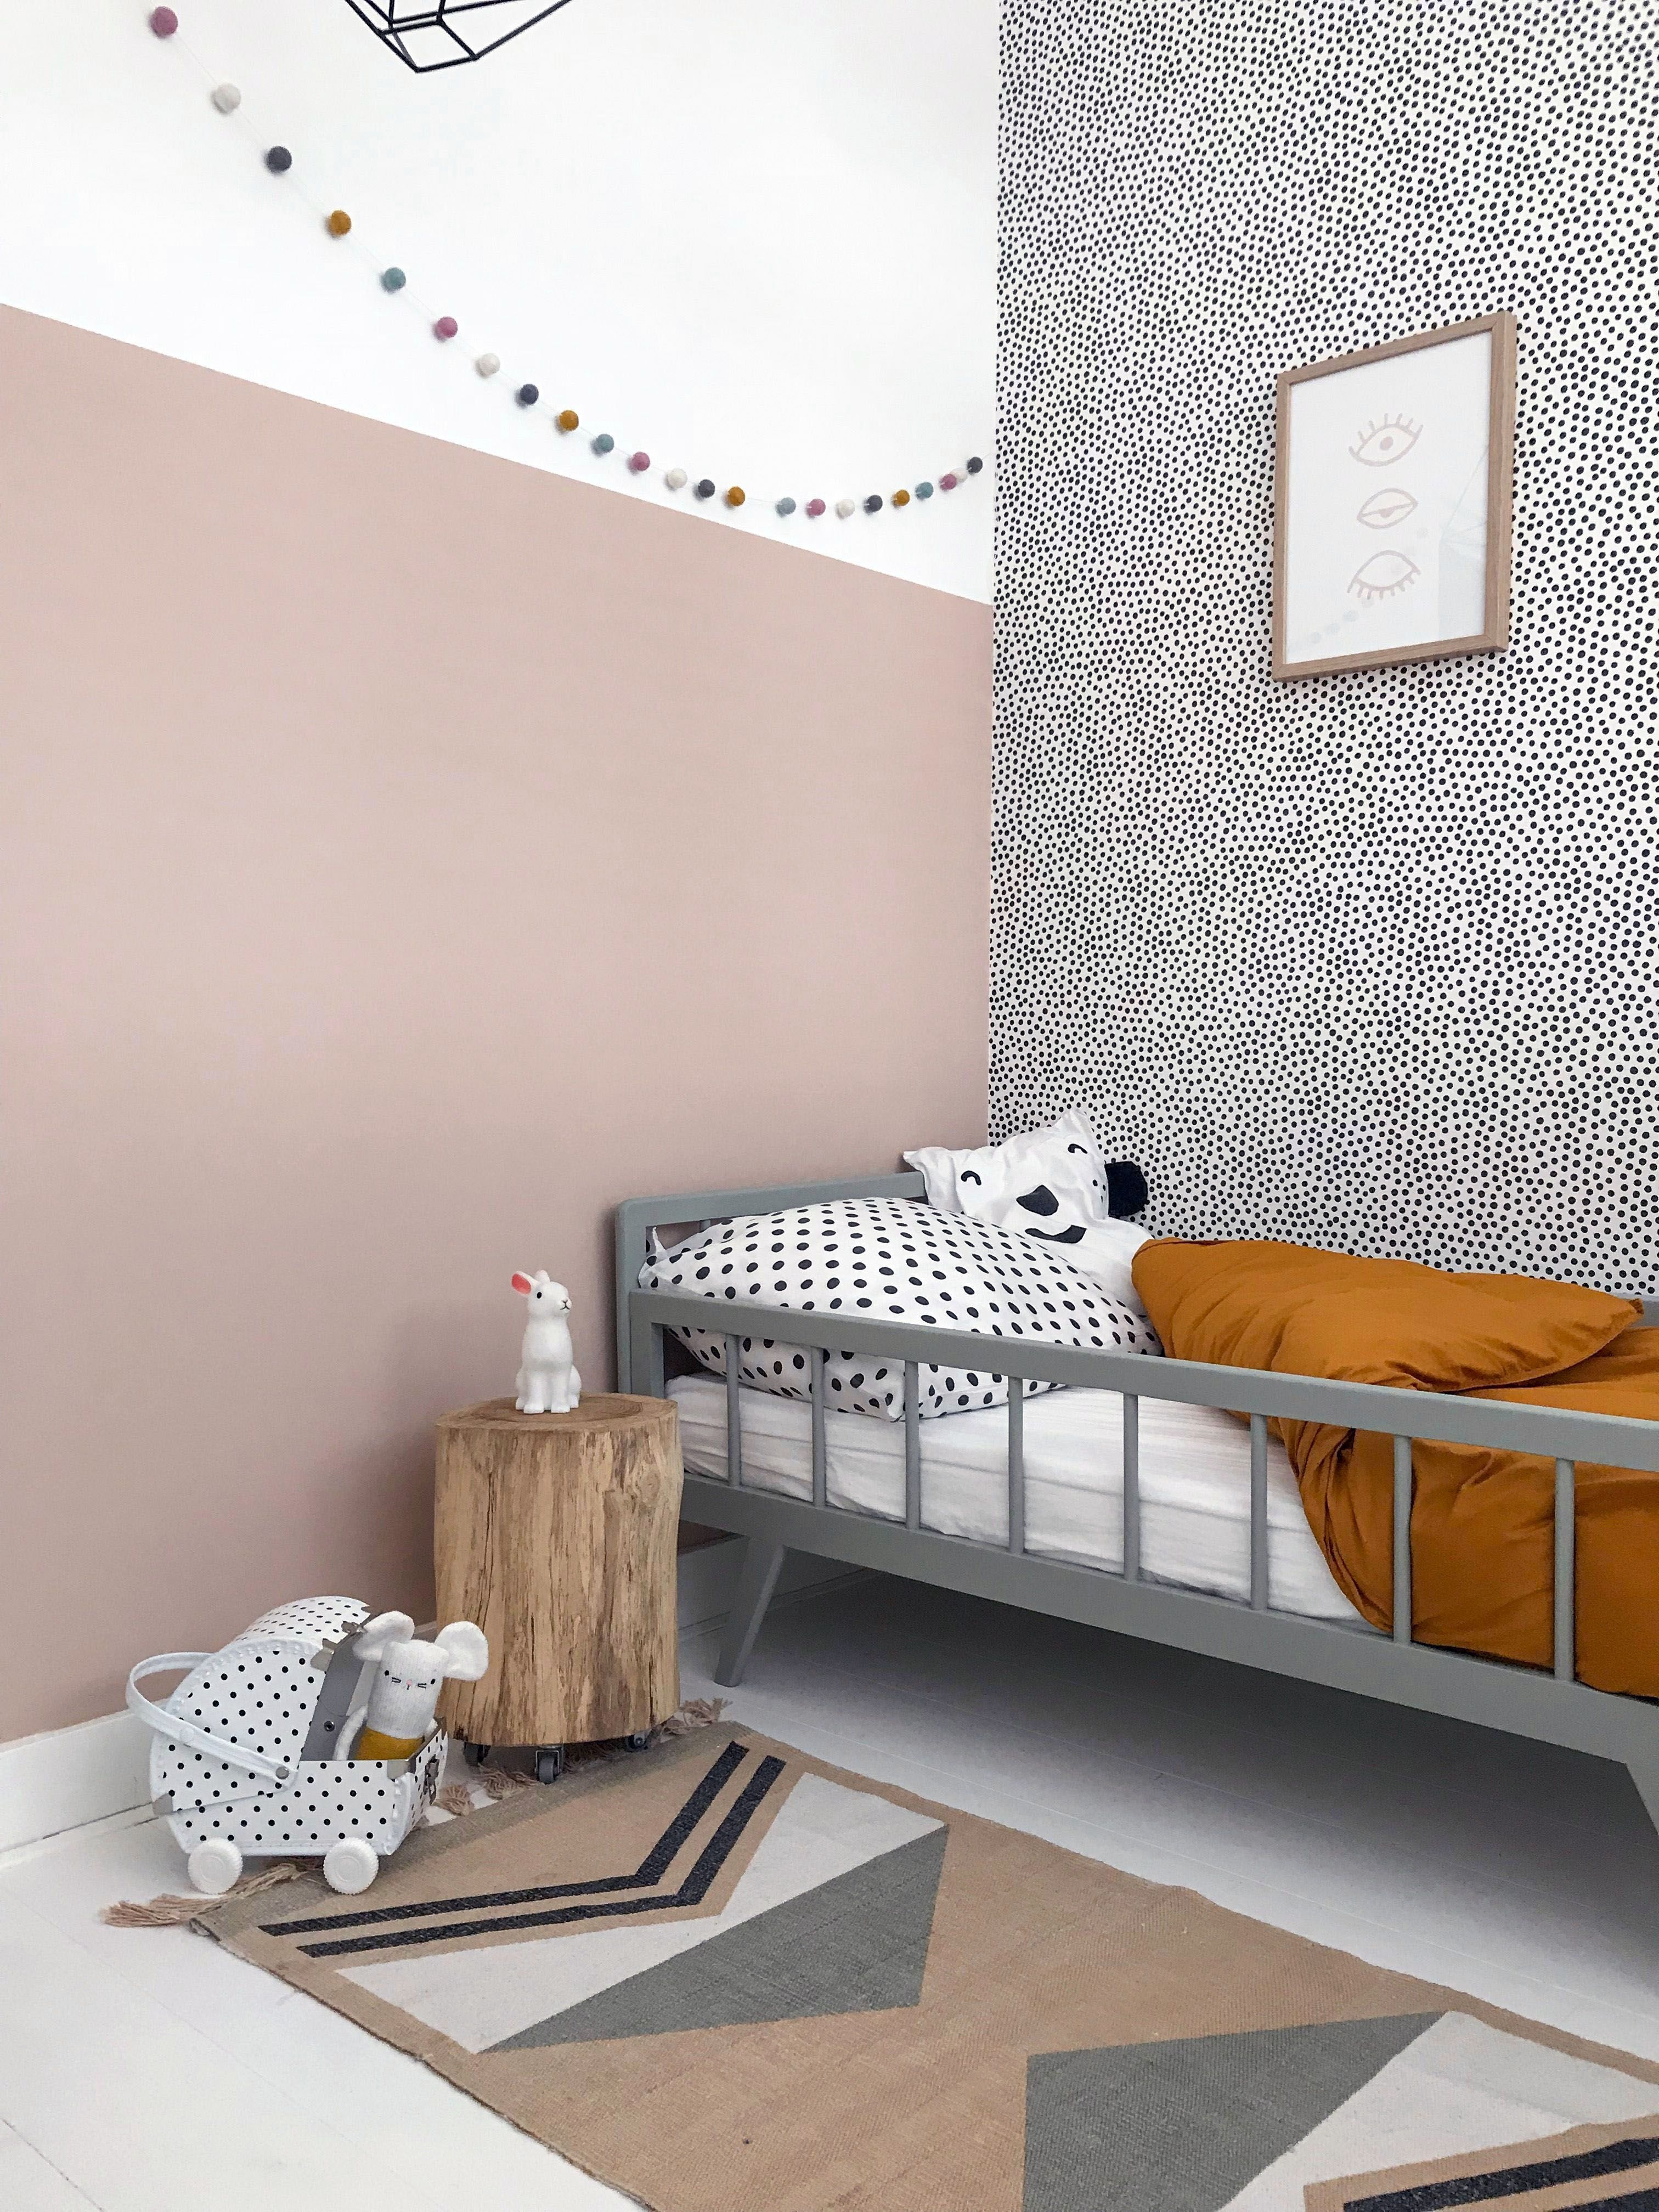 Master Bedroom Decorating Ideas With Images Kid Room Decor